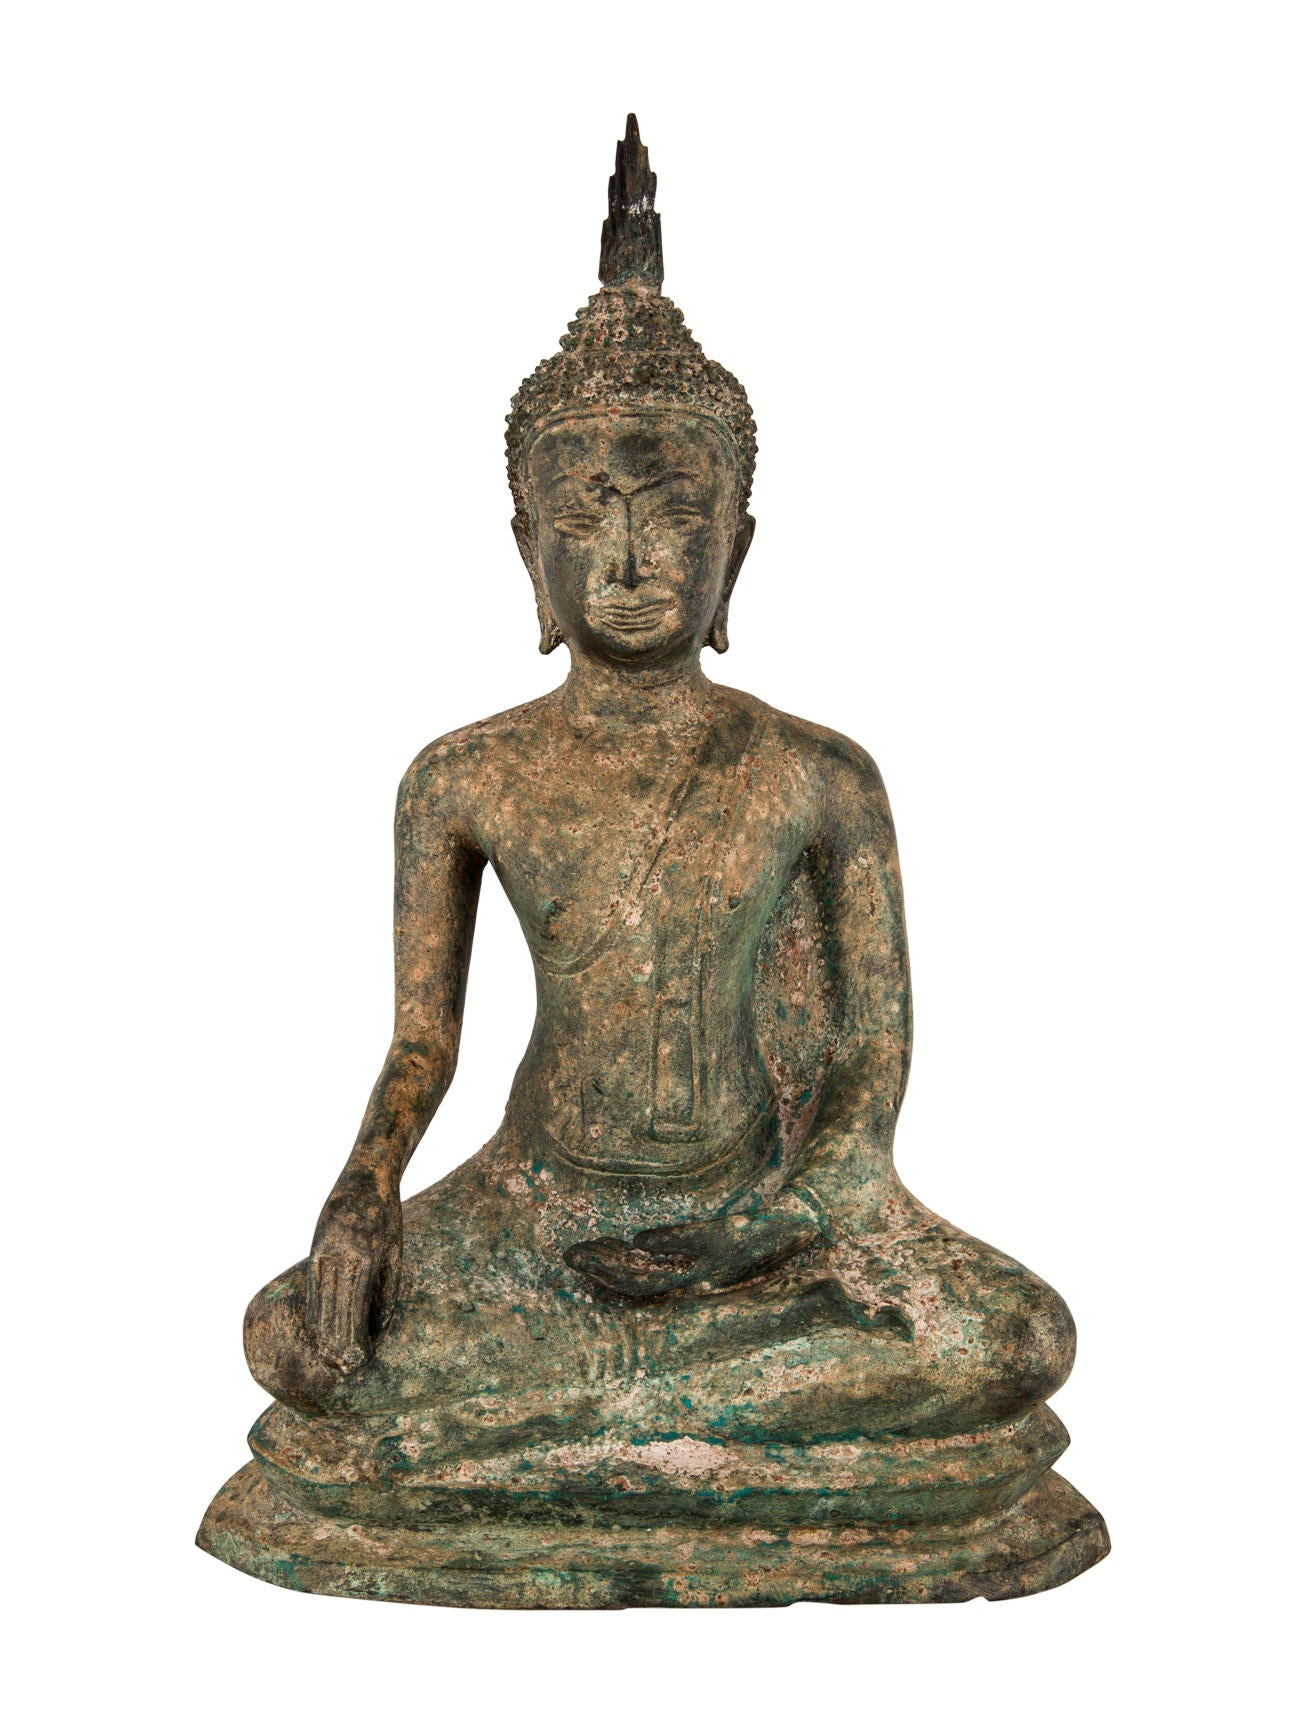 Bronze Sitting Buddha Decor And Accessories Decor21209 The Realreal